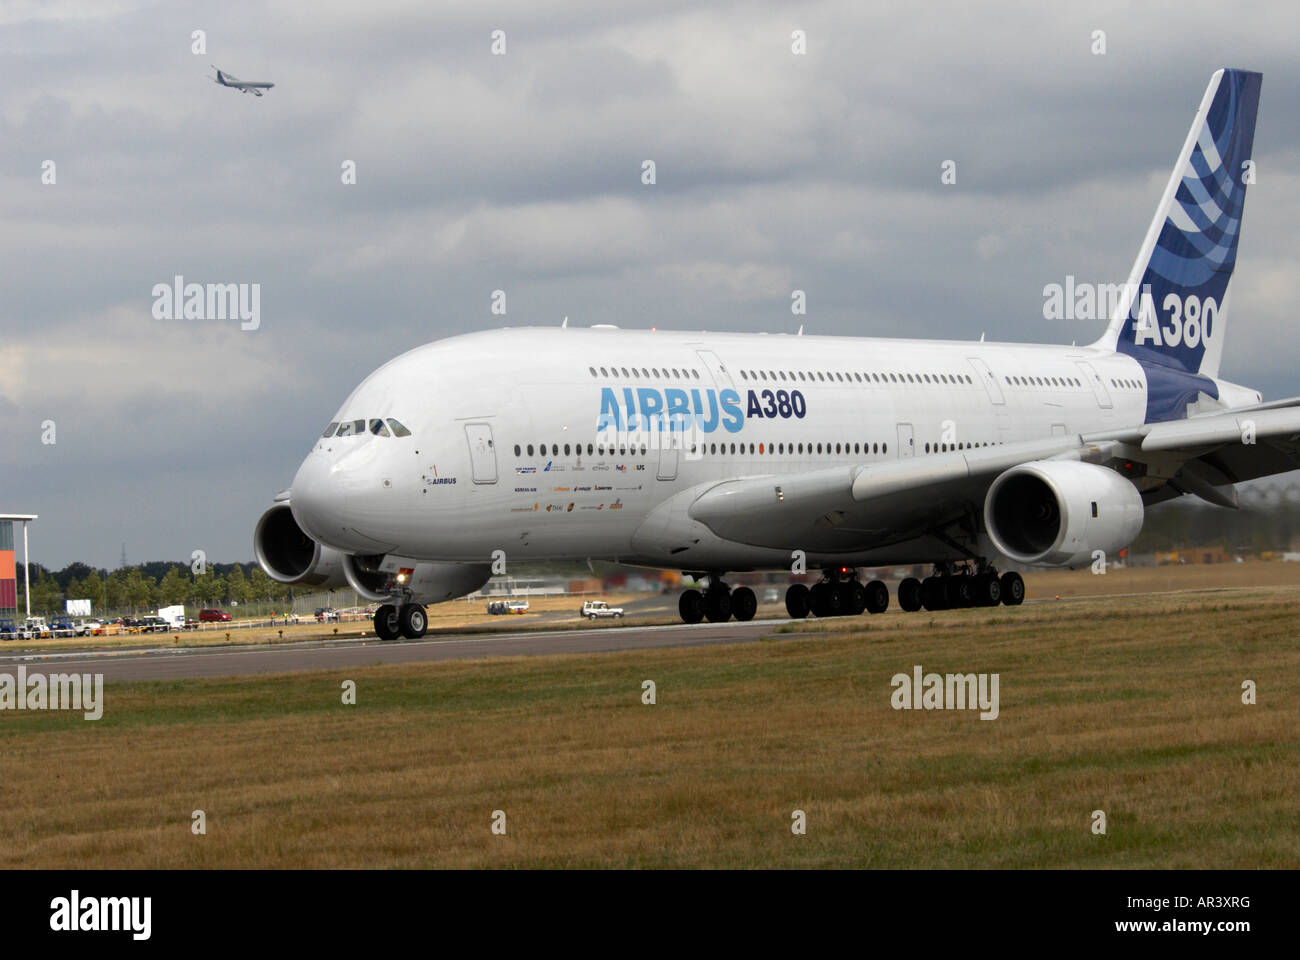 airbus a340 800 stock photos airbus a340 800 stock images alamy